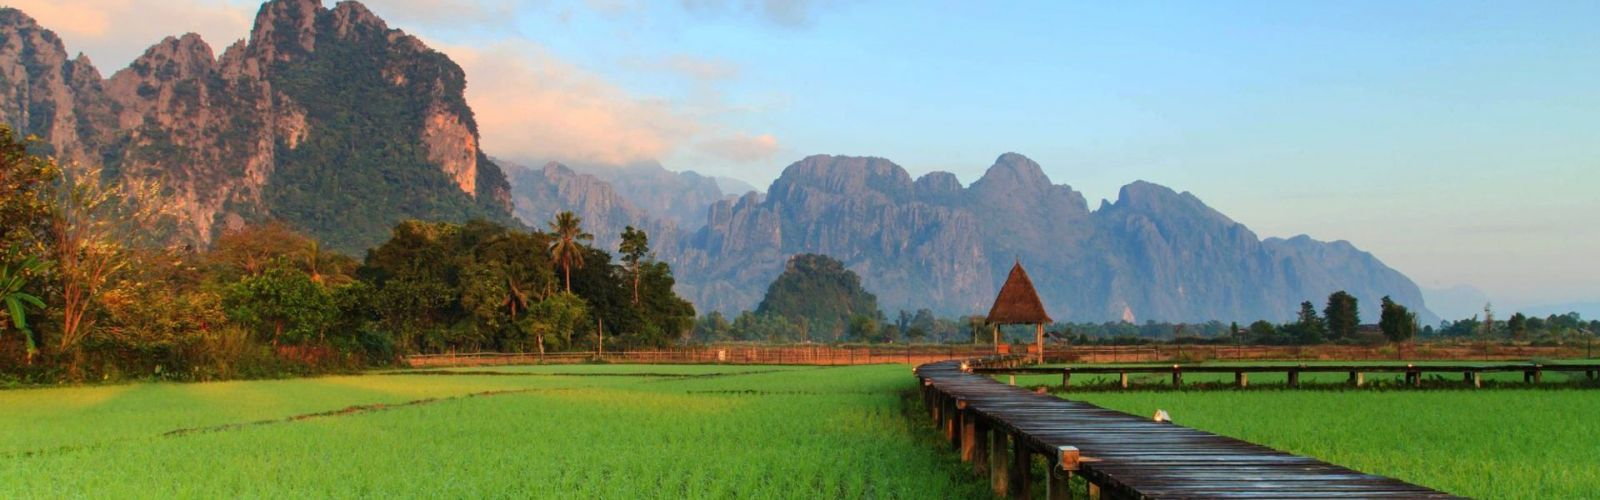 Laos Hill Tribes and Trekking Tours